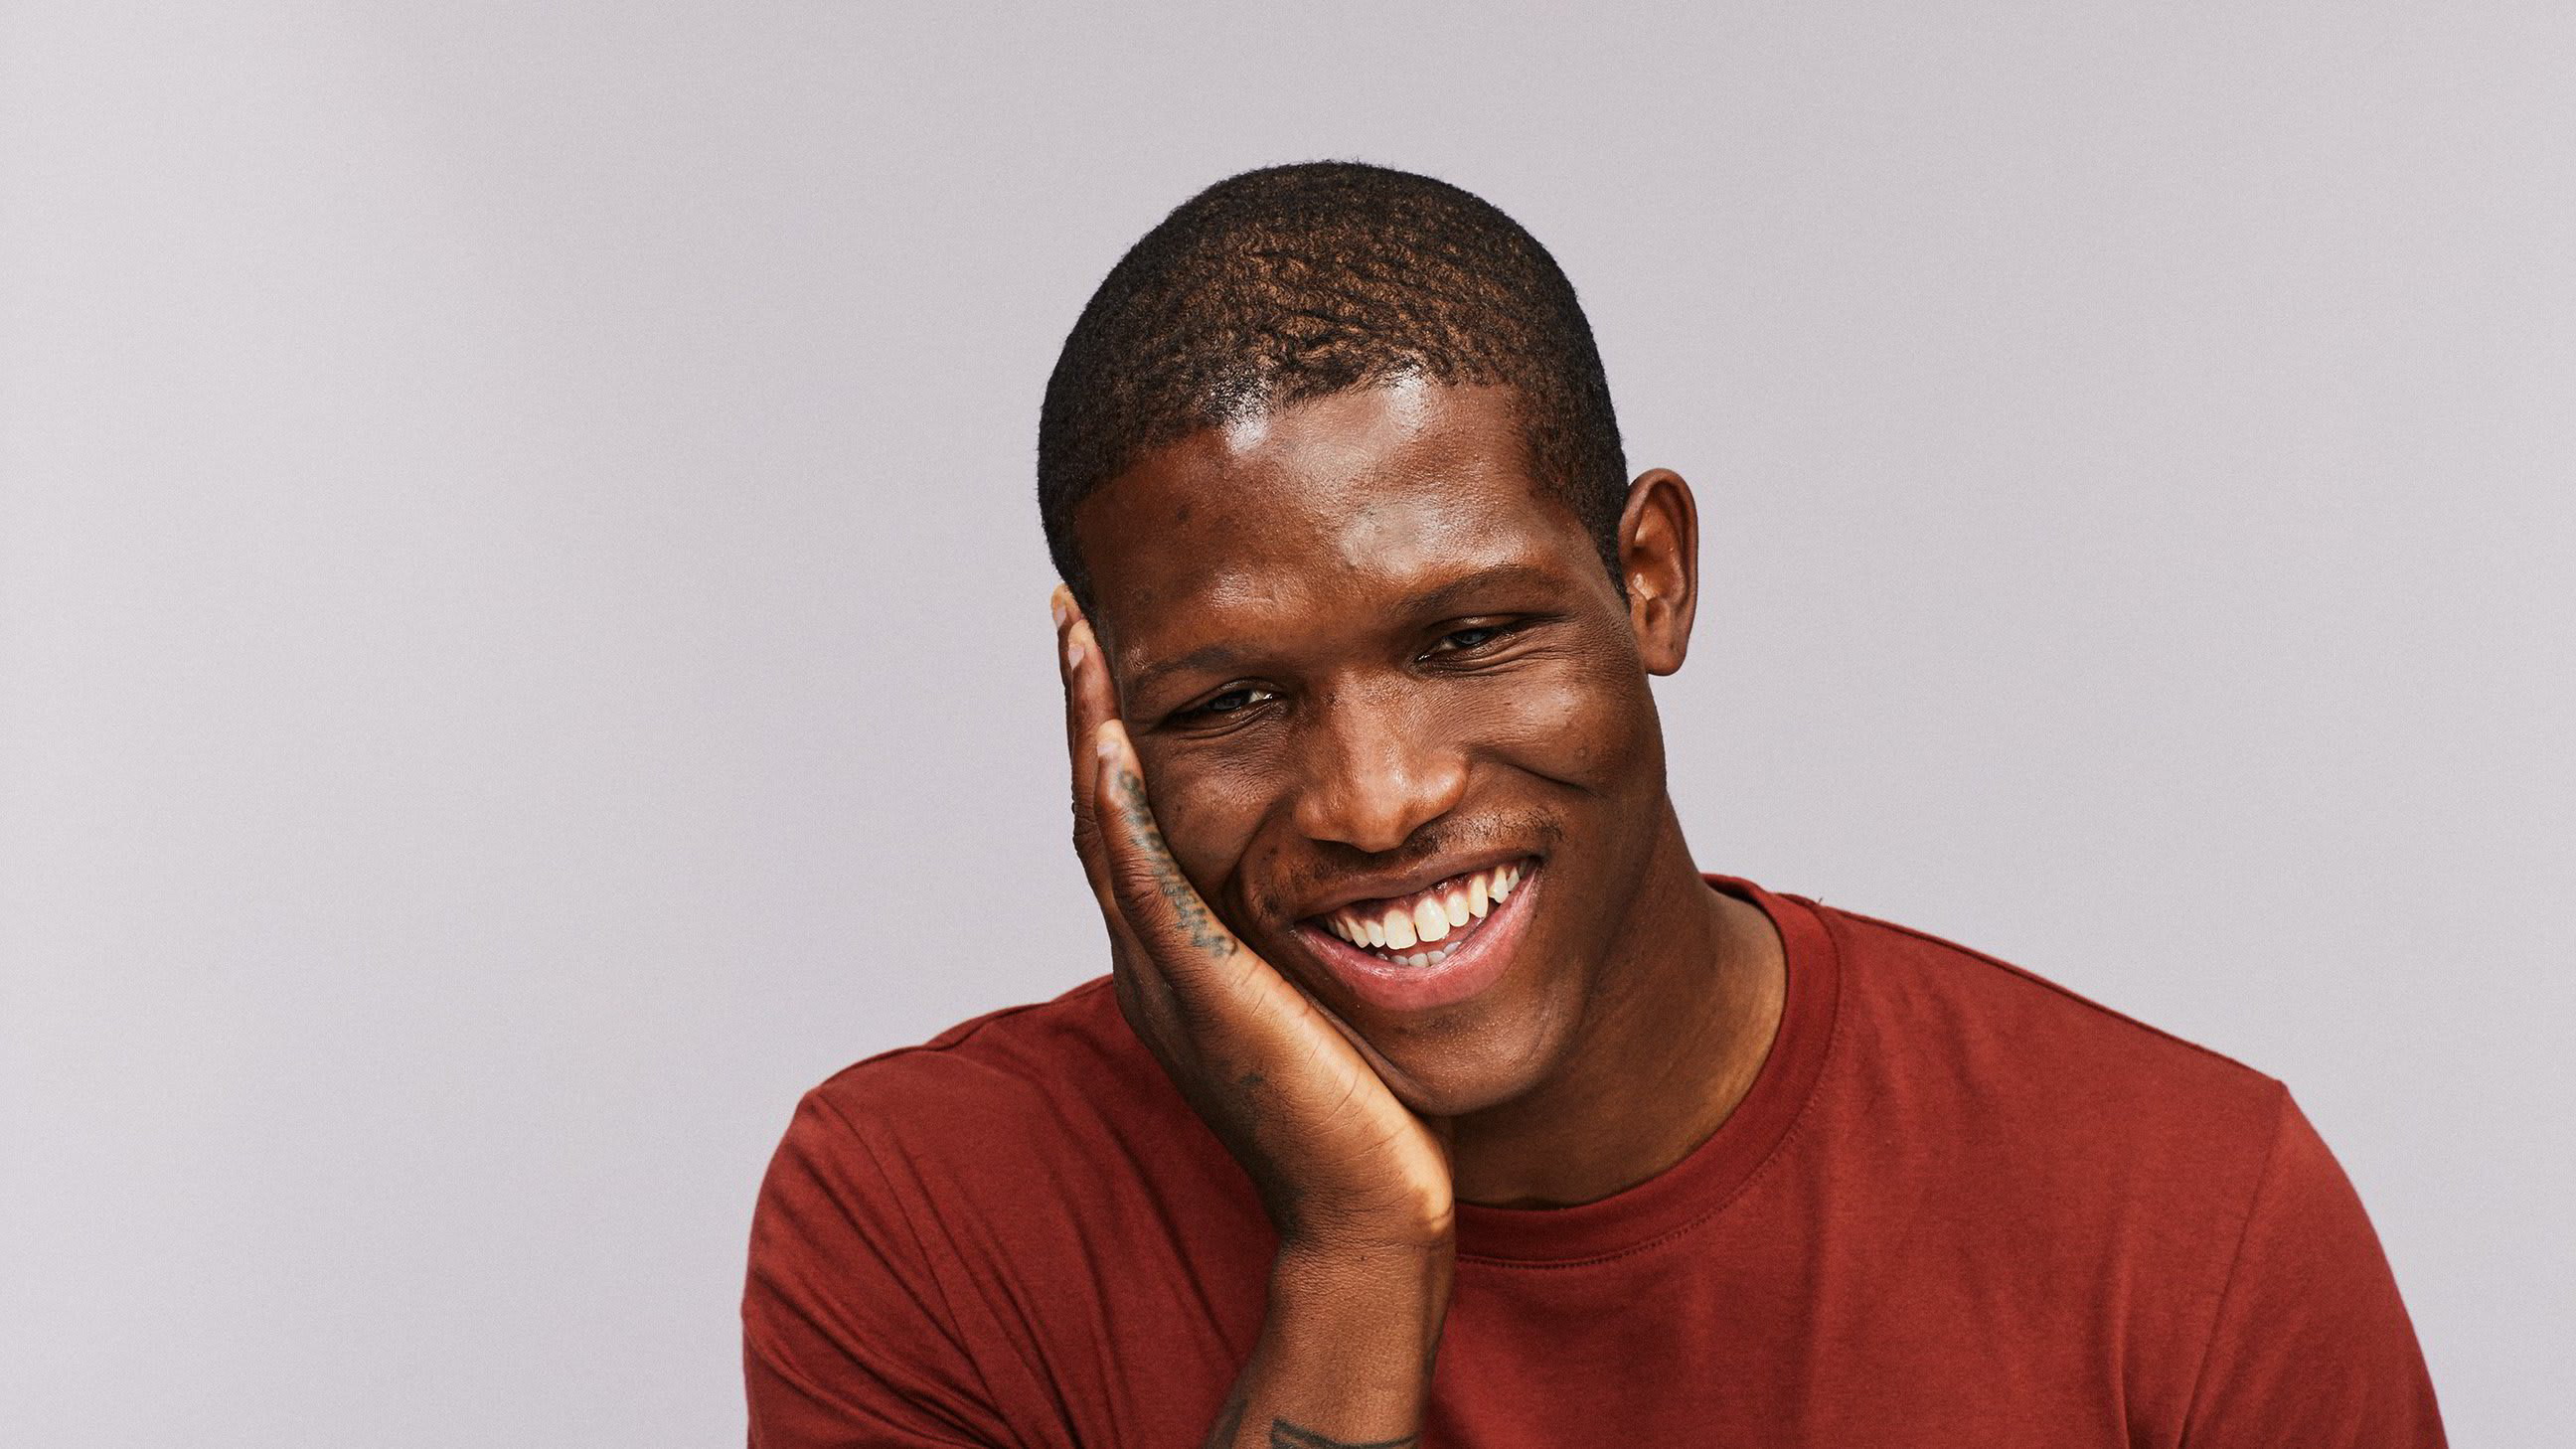 A young man smiling in disbelief at his smooth skin